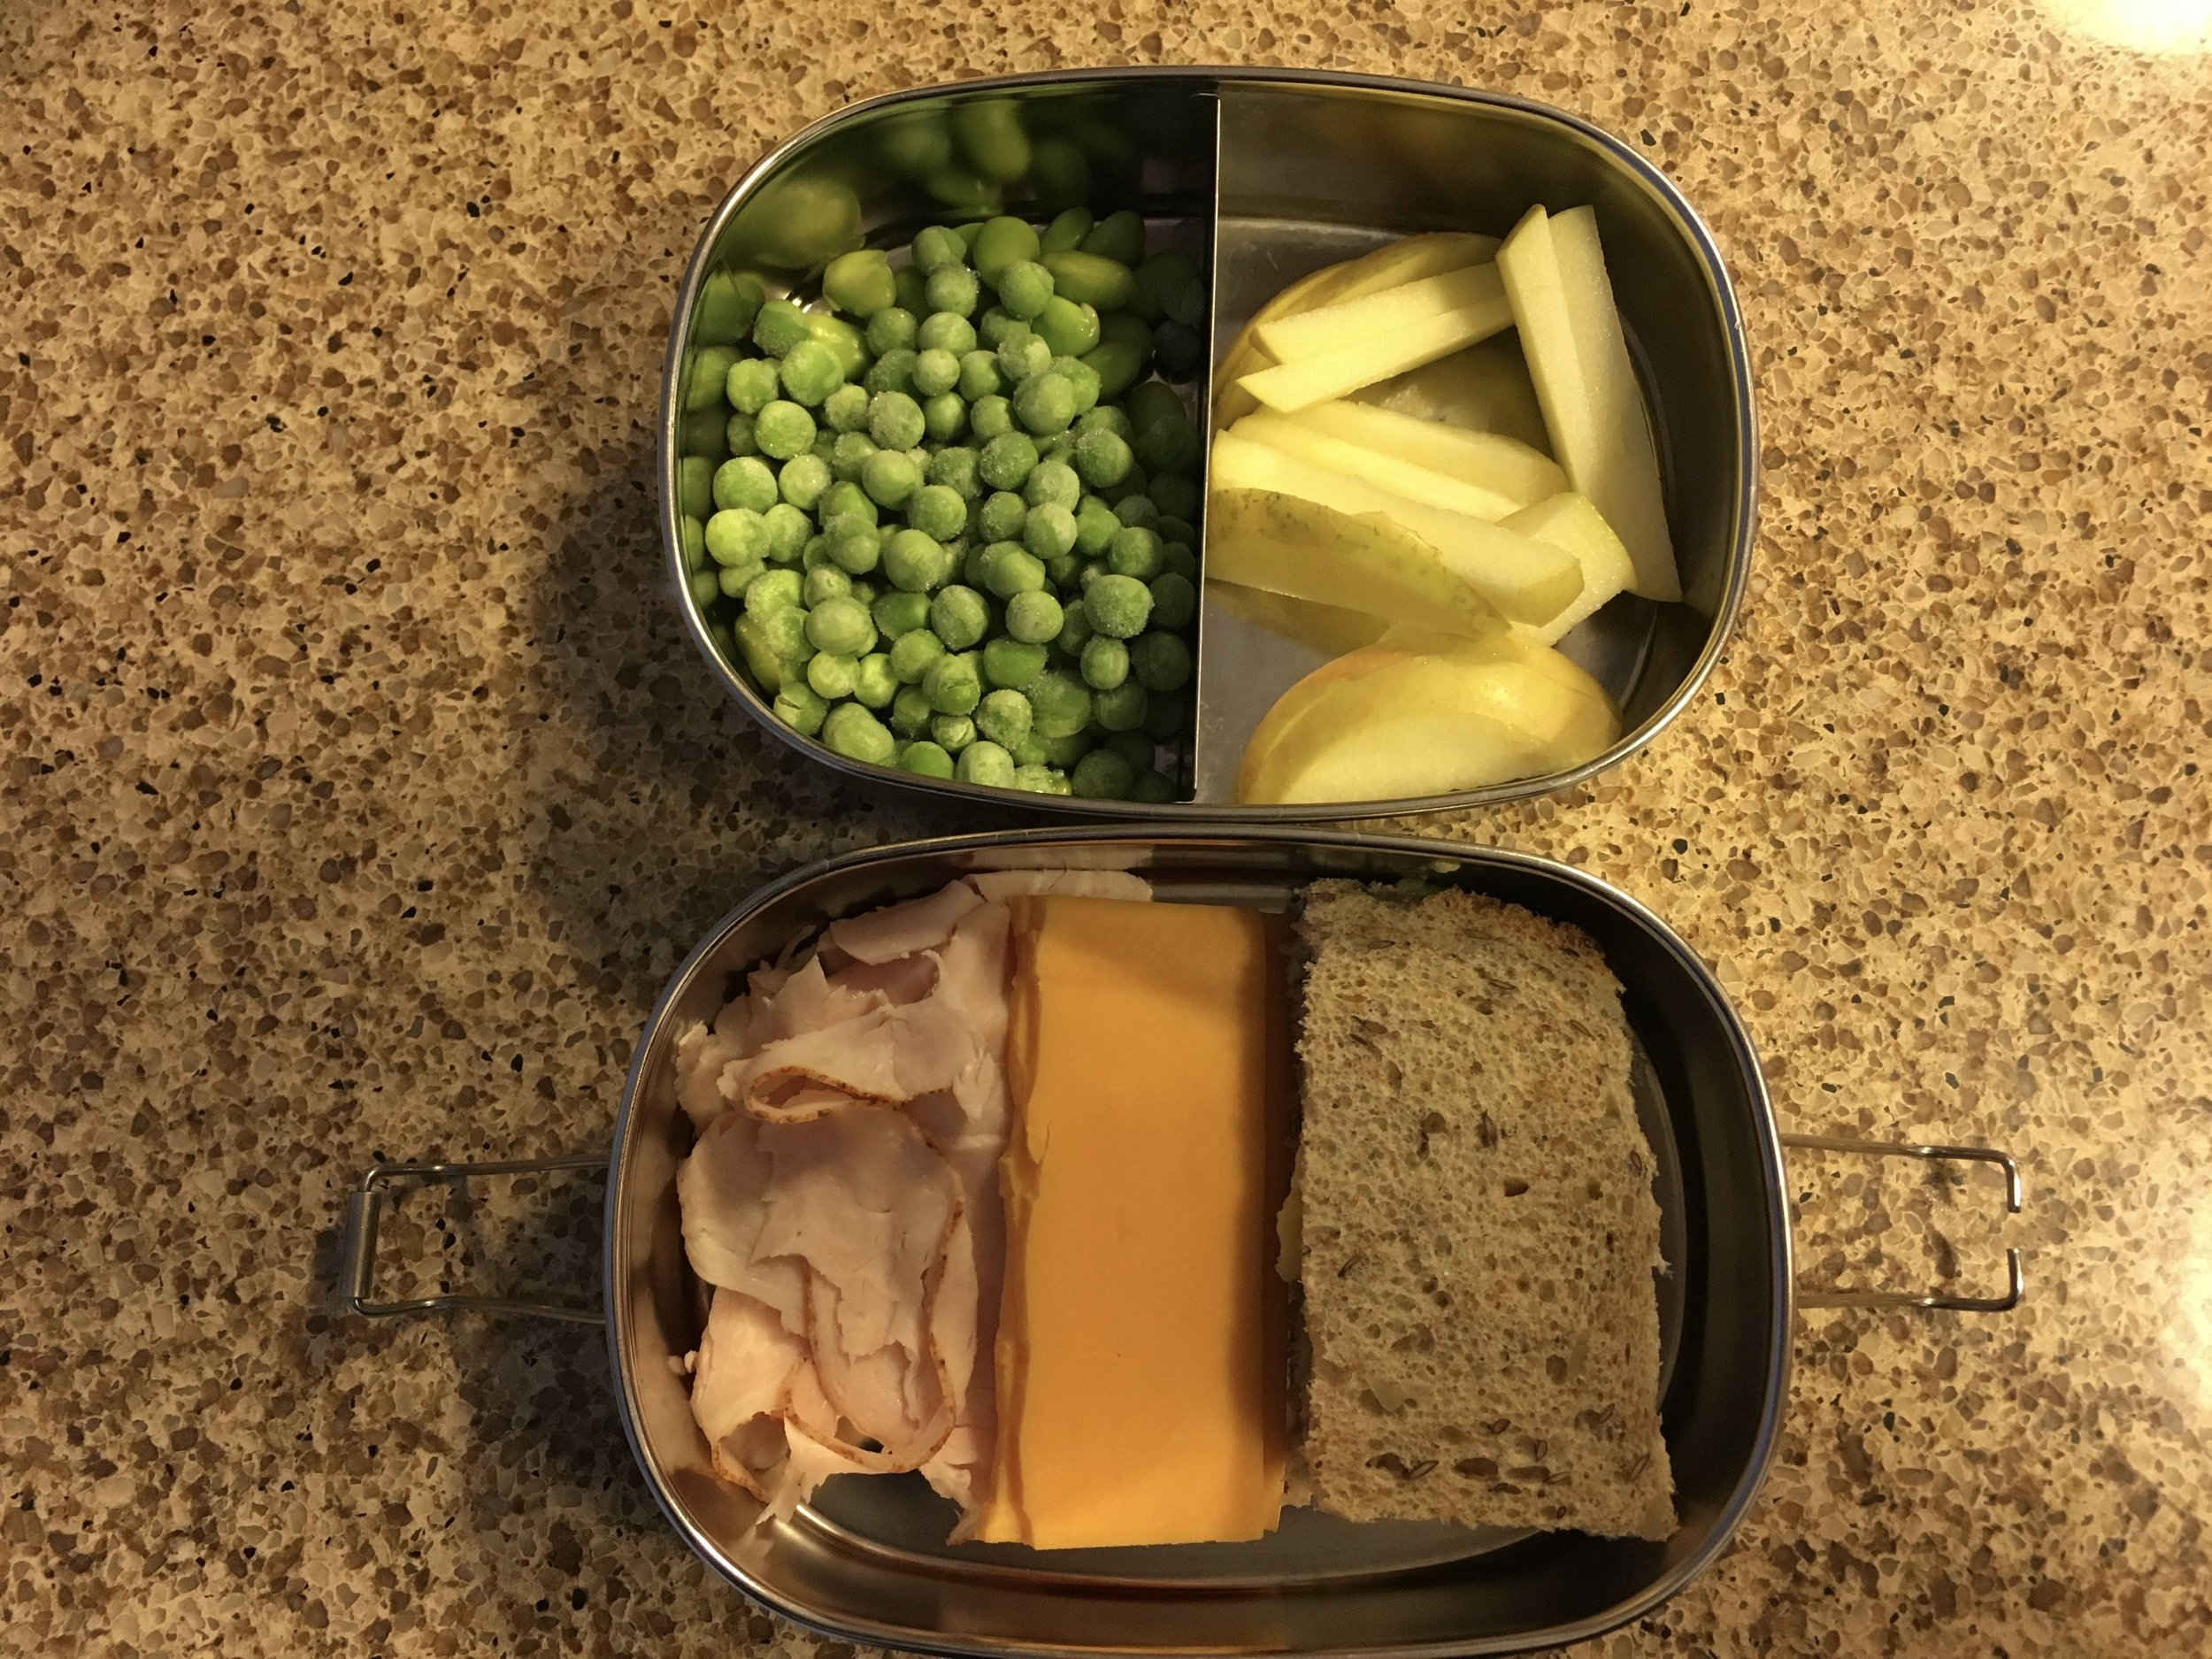 Super simple lunch. Clockwise from top left: frozen peas, sliced apple, bread, cheese and turkey